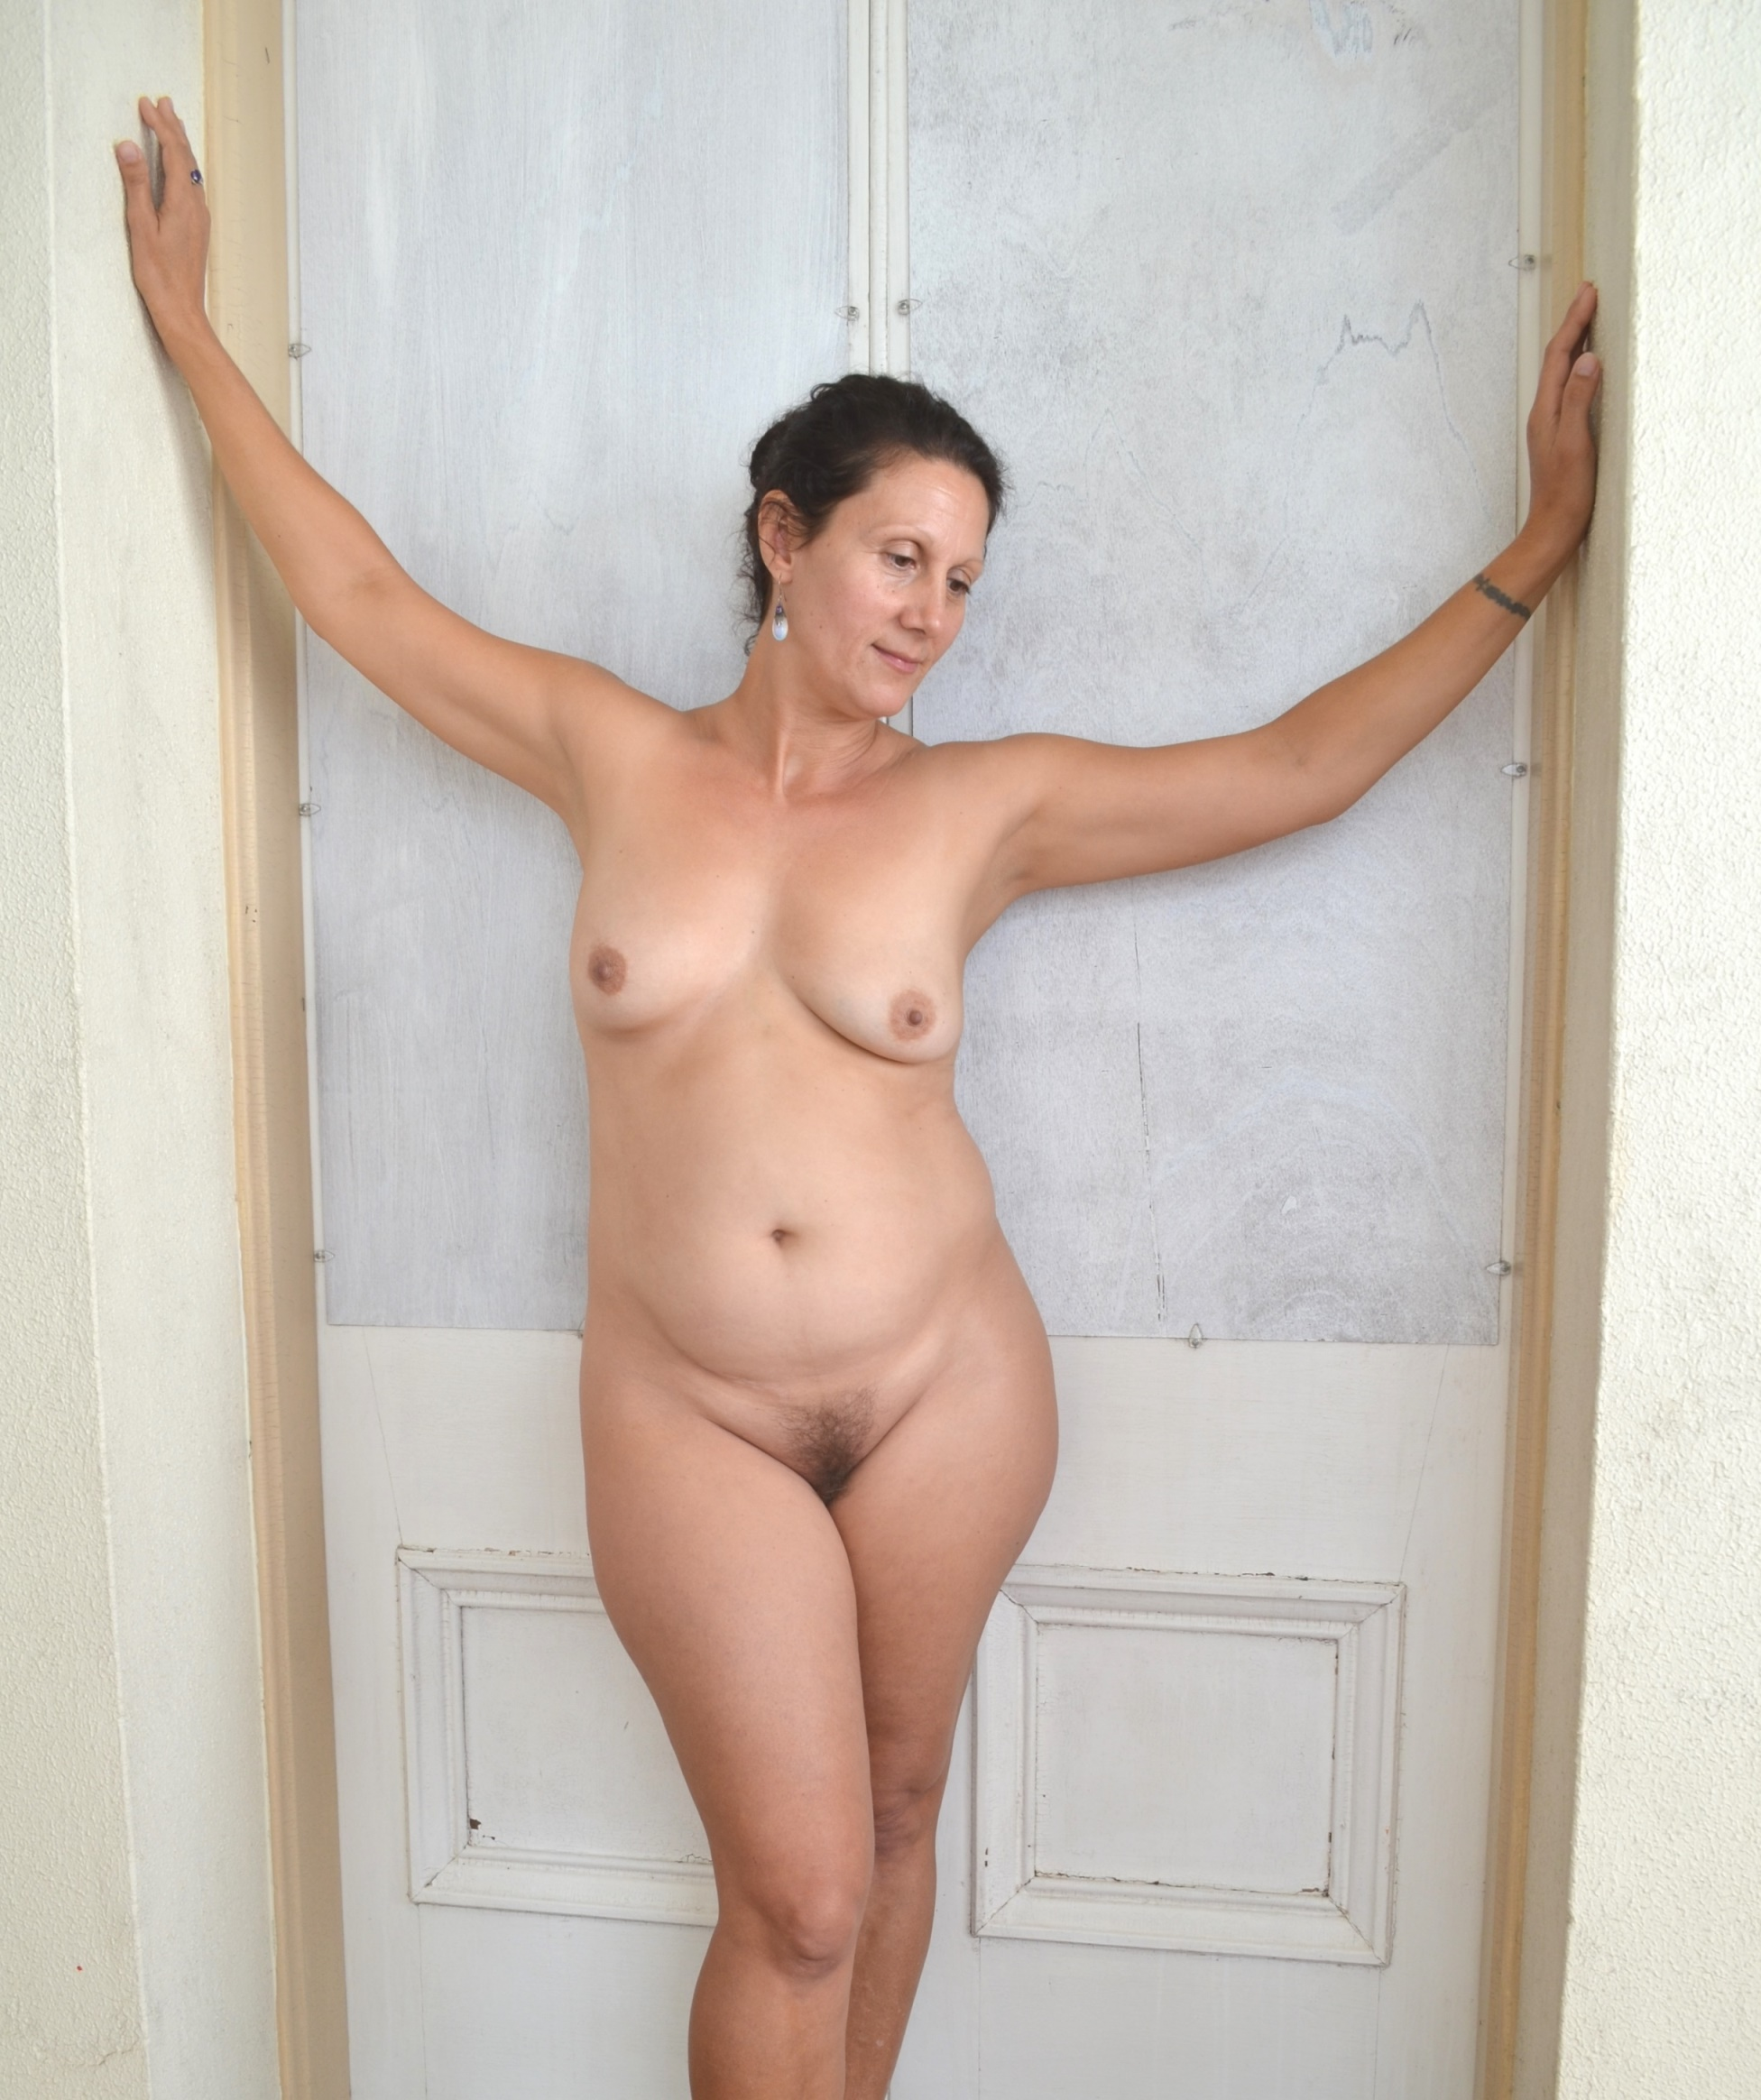 Amature mature nude art models Unfortunately!